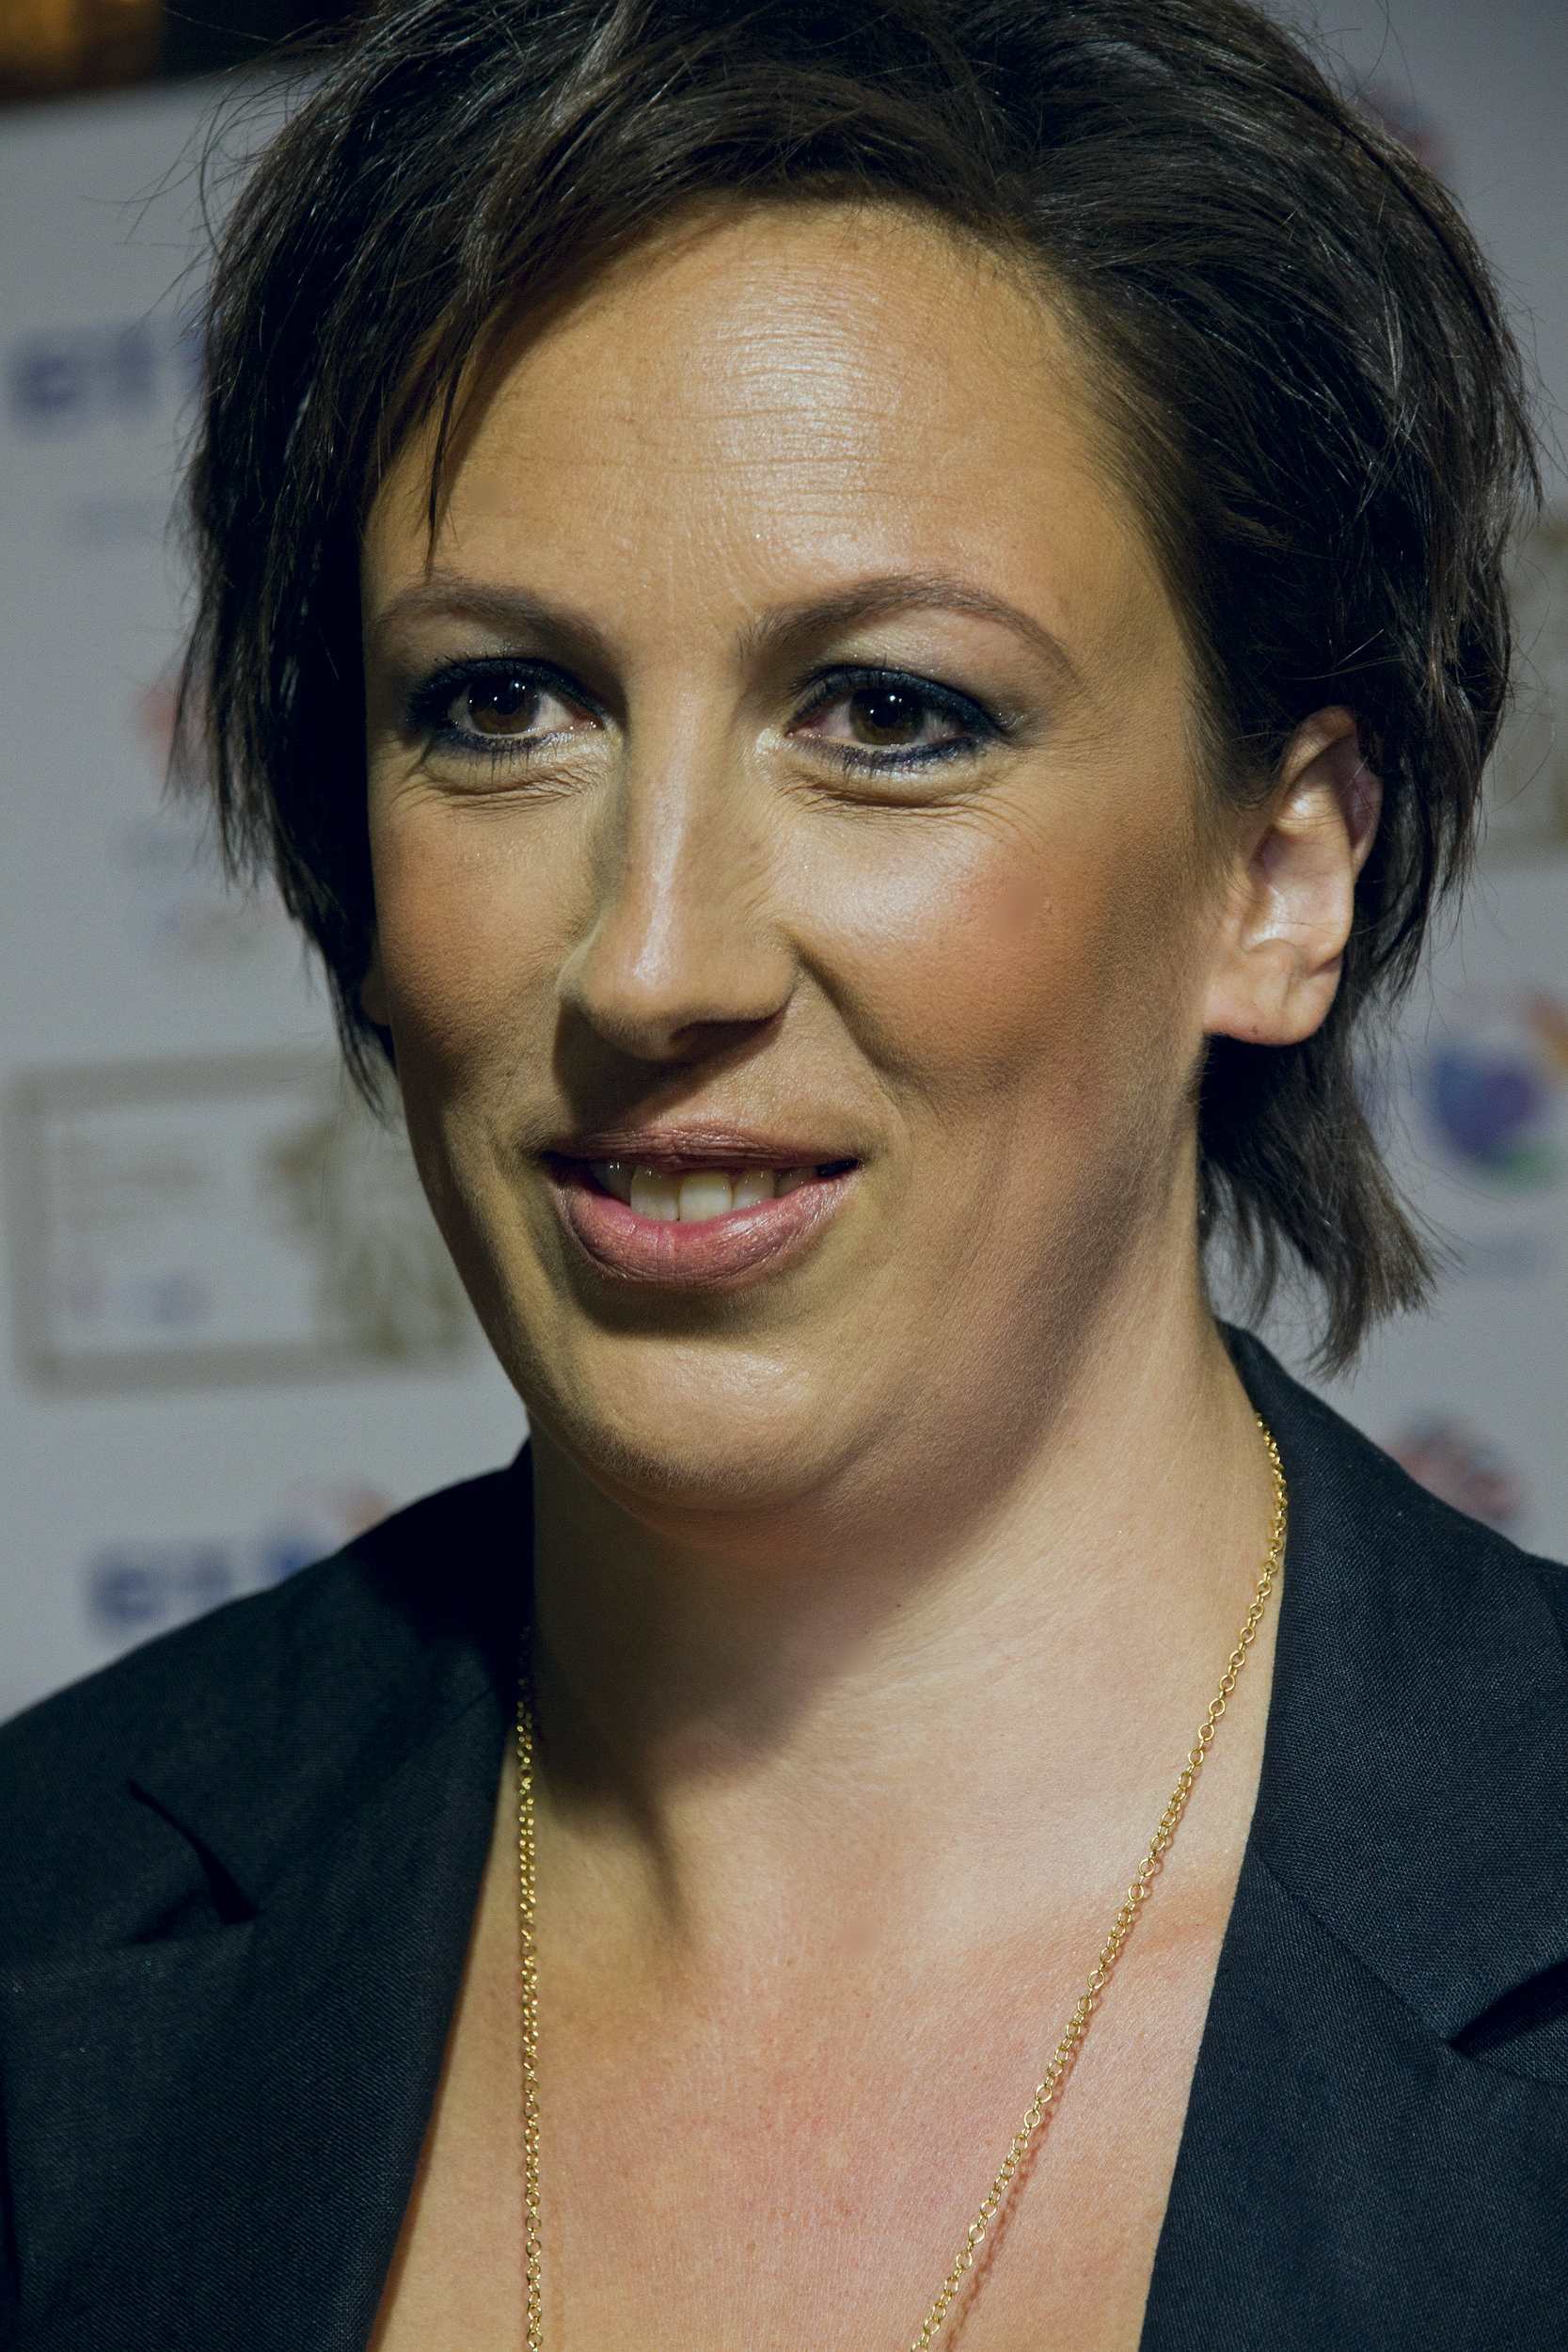 The 45-year old daughter of father David Hart Dyke and mother Diana Margaret Luce Miranda Hart in 2018 photo. Miranda Hart earned a  million dollar salary - leaving the net worth at 1.5 million in 2018